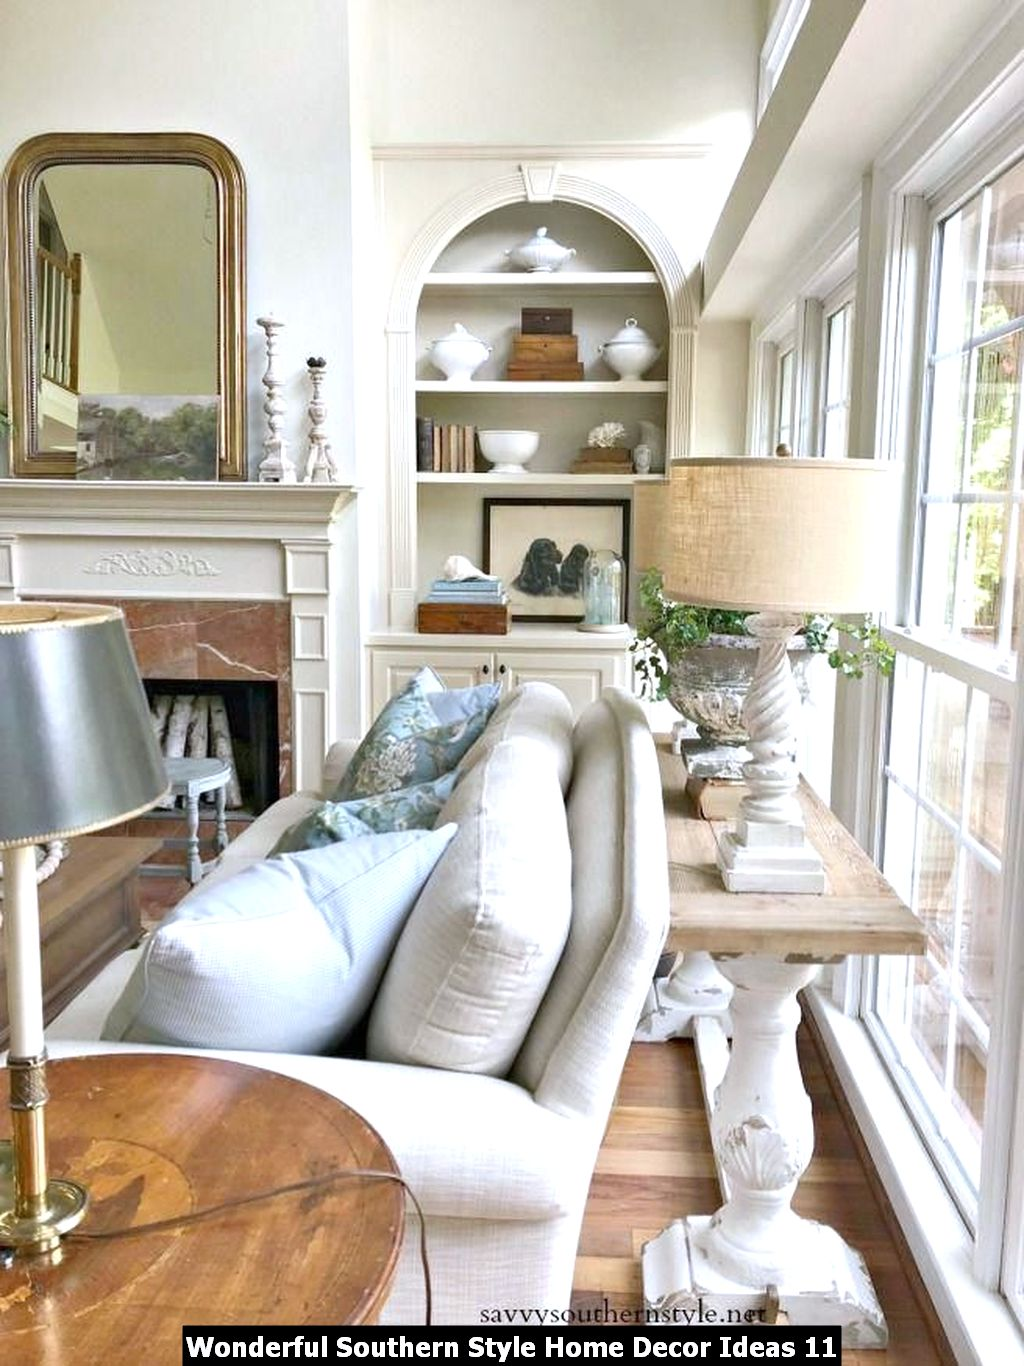 Wonderful Southern Style Home Decor Ideas 11